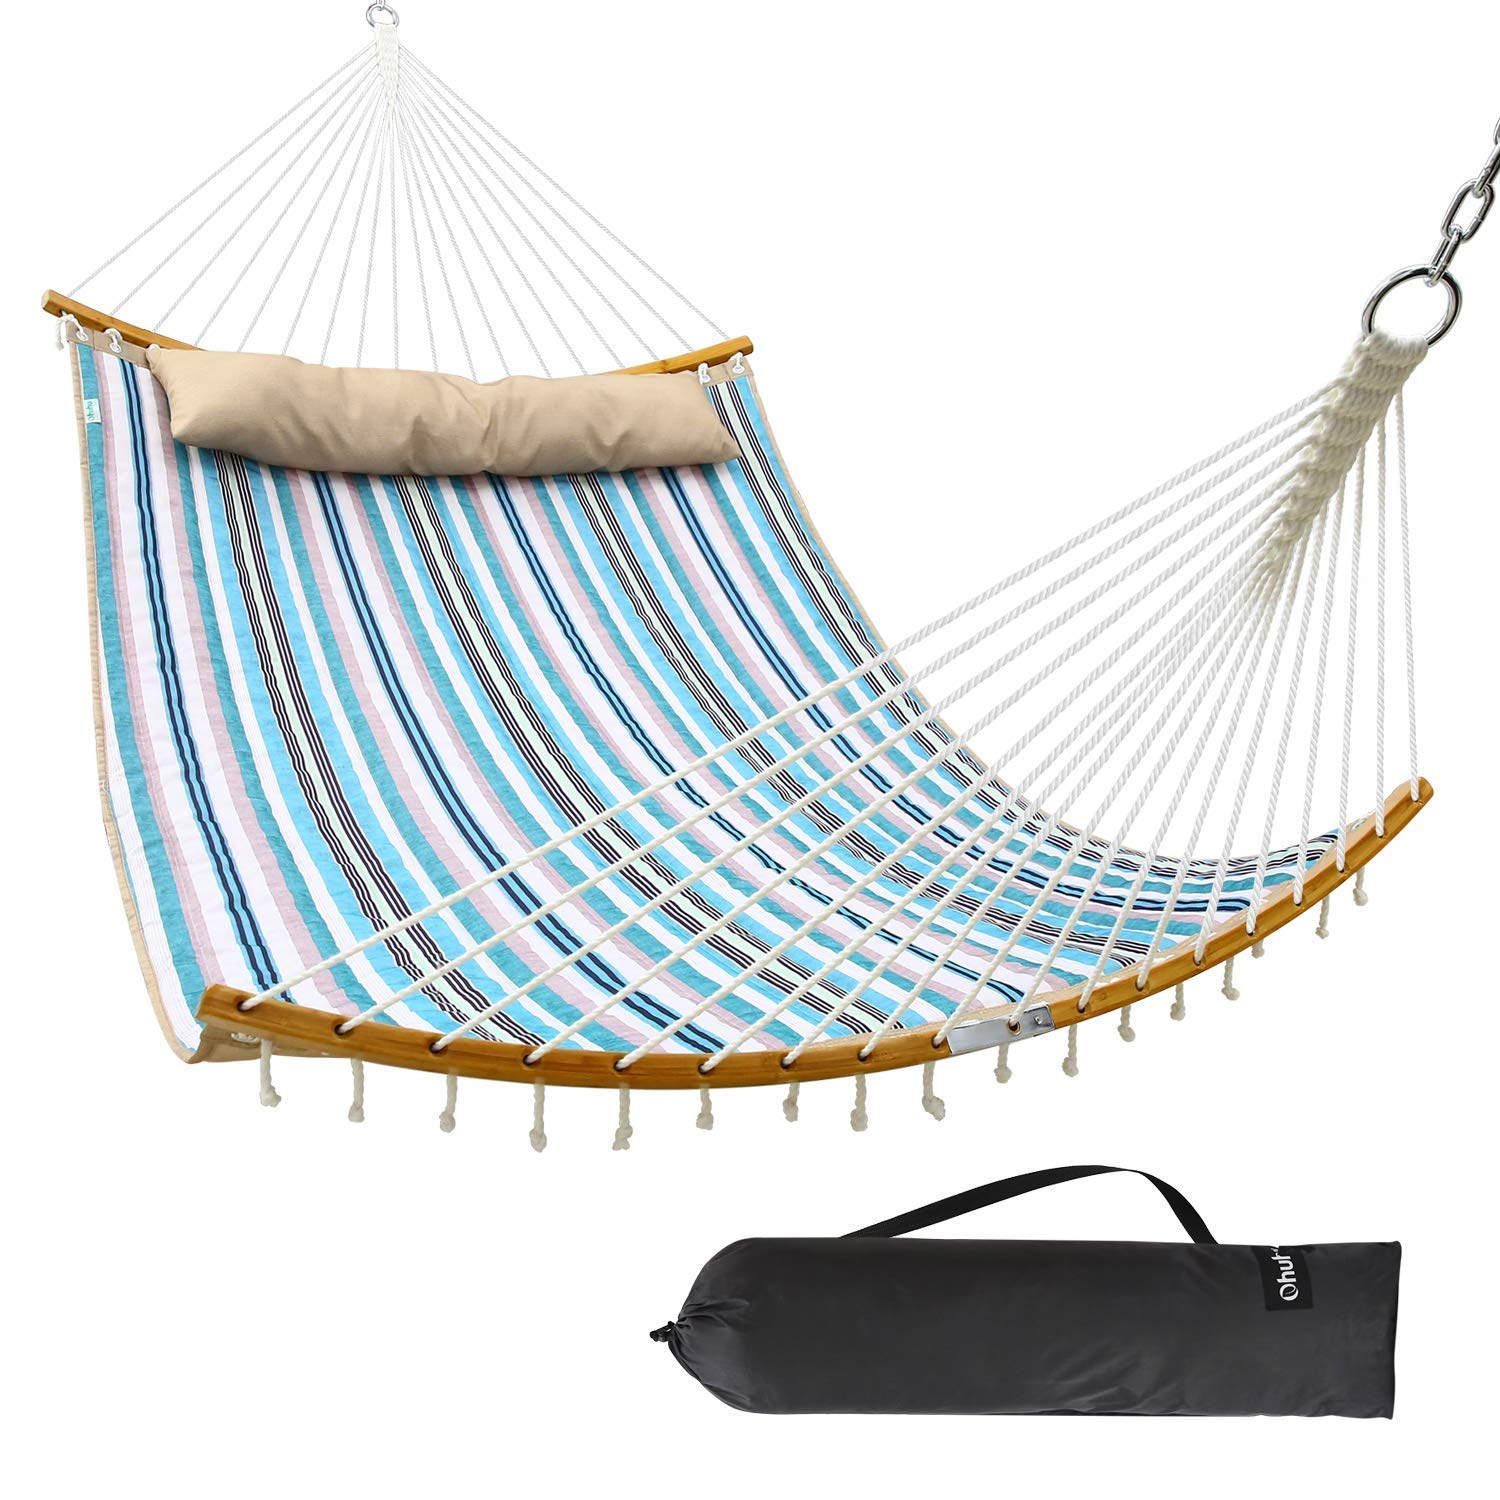 Ohuhu Hammock Detachable Curved Bar Carrying